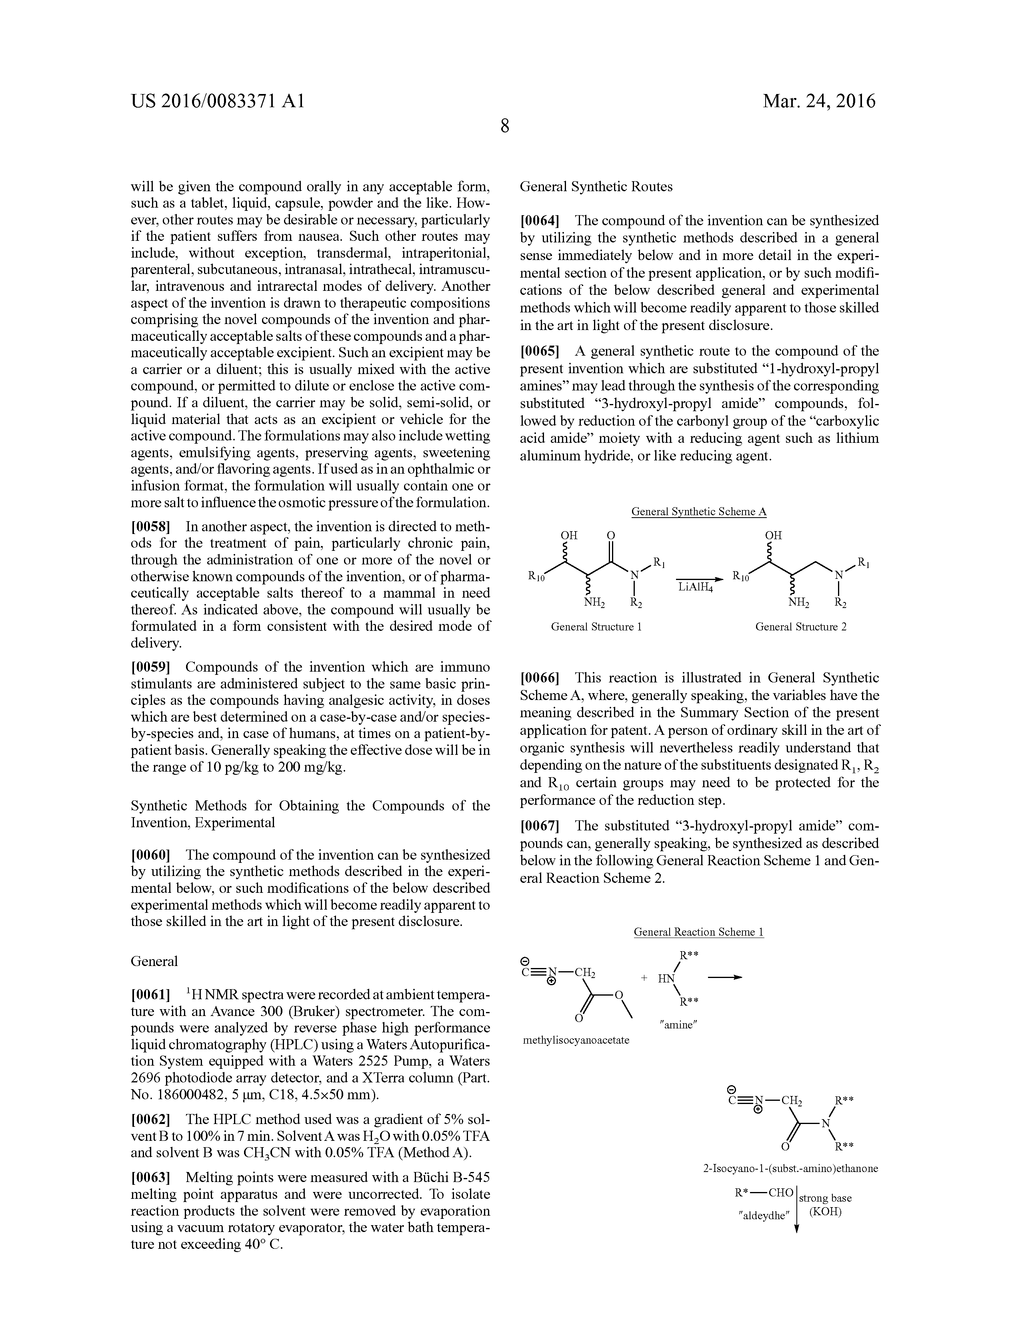 1-ARYL-1-HYDROXY-2,3-DIAMINO-PROPYL AMINES,     1-HETEROARYL-1-HYDROXY-2,3-DIAMINO-PROPYL AMINES AND RELATED COMPOUNDS     HAVING ANALGESIC AND/OR IMMUNO STIMULANT ACTIVITY - diagram, schematic, and image 09